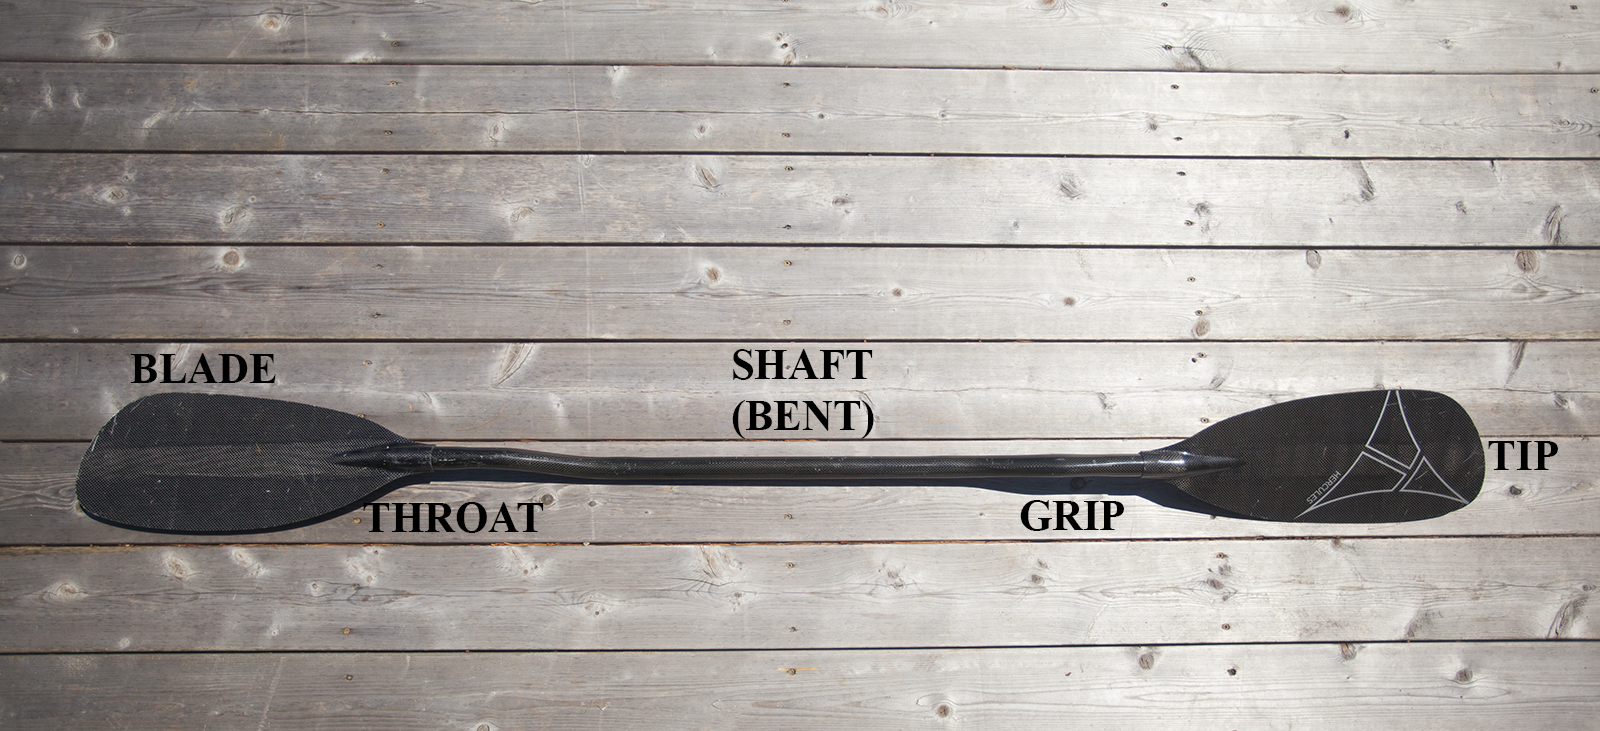 A kayak paddle with parts labelled